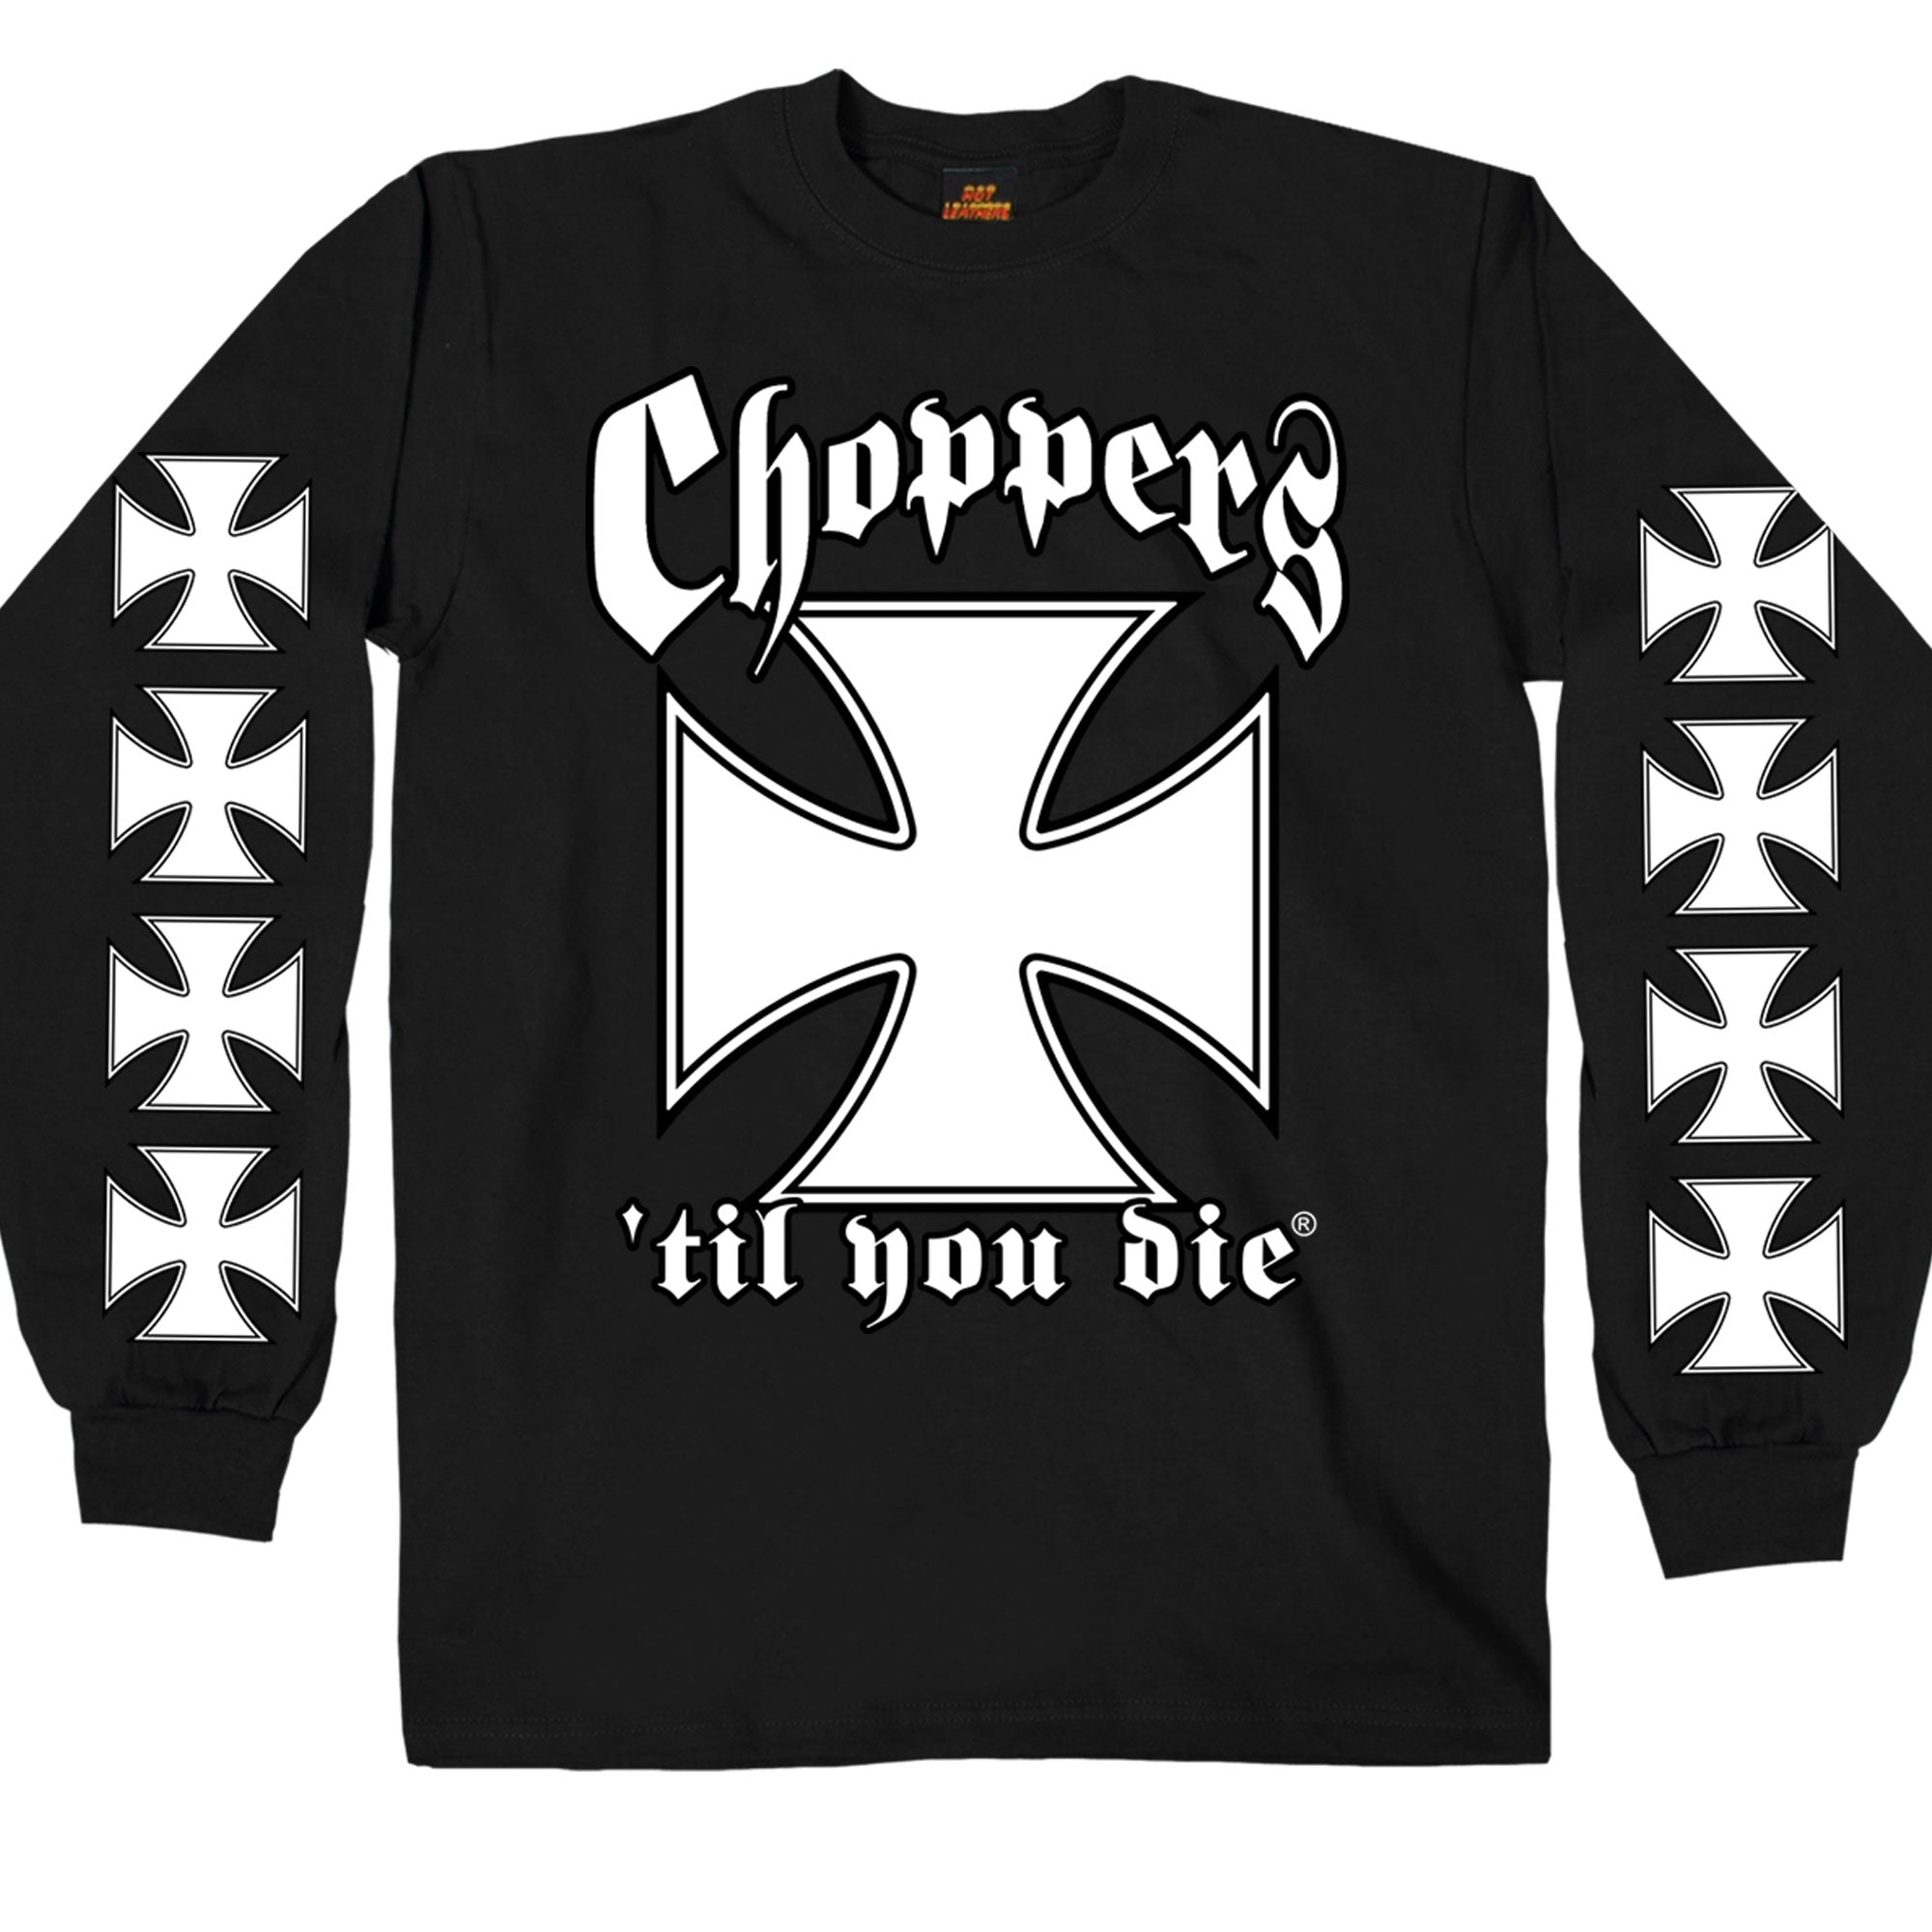 Hot Leathers Classic Choppers 'Til You Die Black Long Sleeve